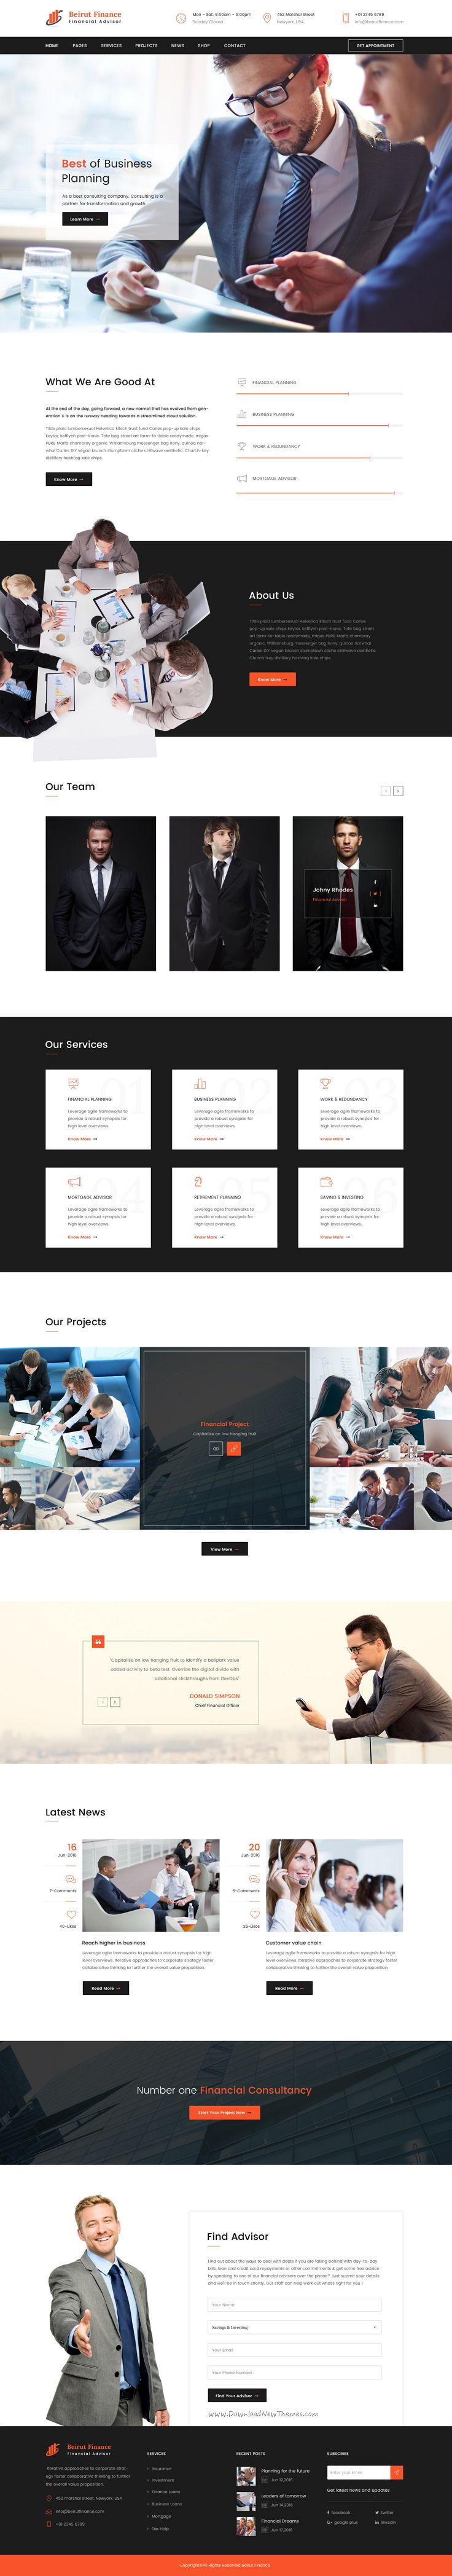 Beirut is wonderful premium #PSD #Template suitable for all types of Finance #business website with 3 homepage layouts and 17 PSD pages download now➝ https://themeforest.net/item/beirut-finance-psd-template/16862815?ref=Datasata